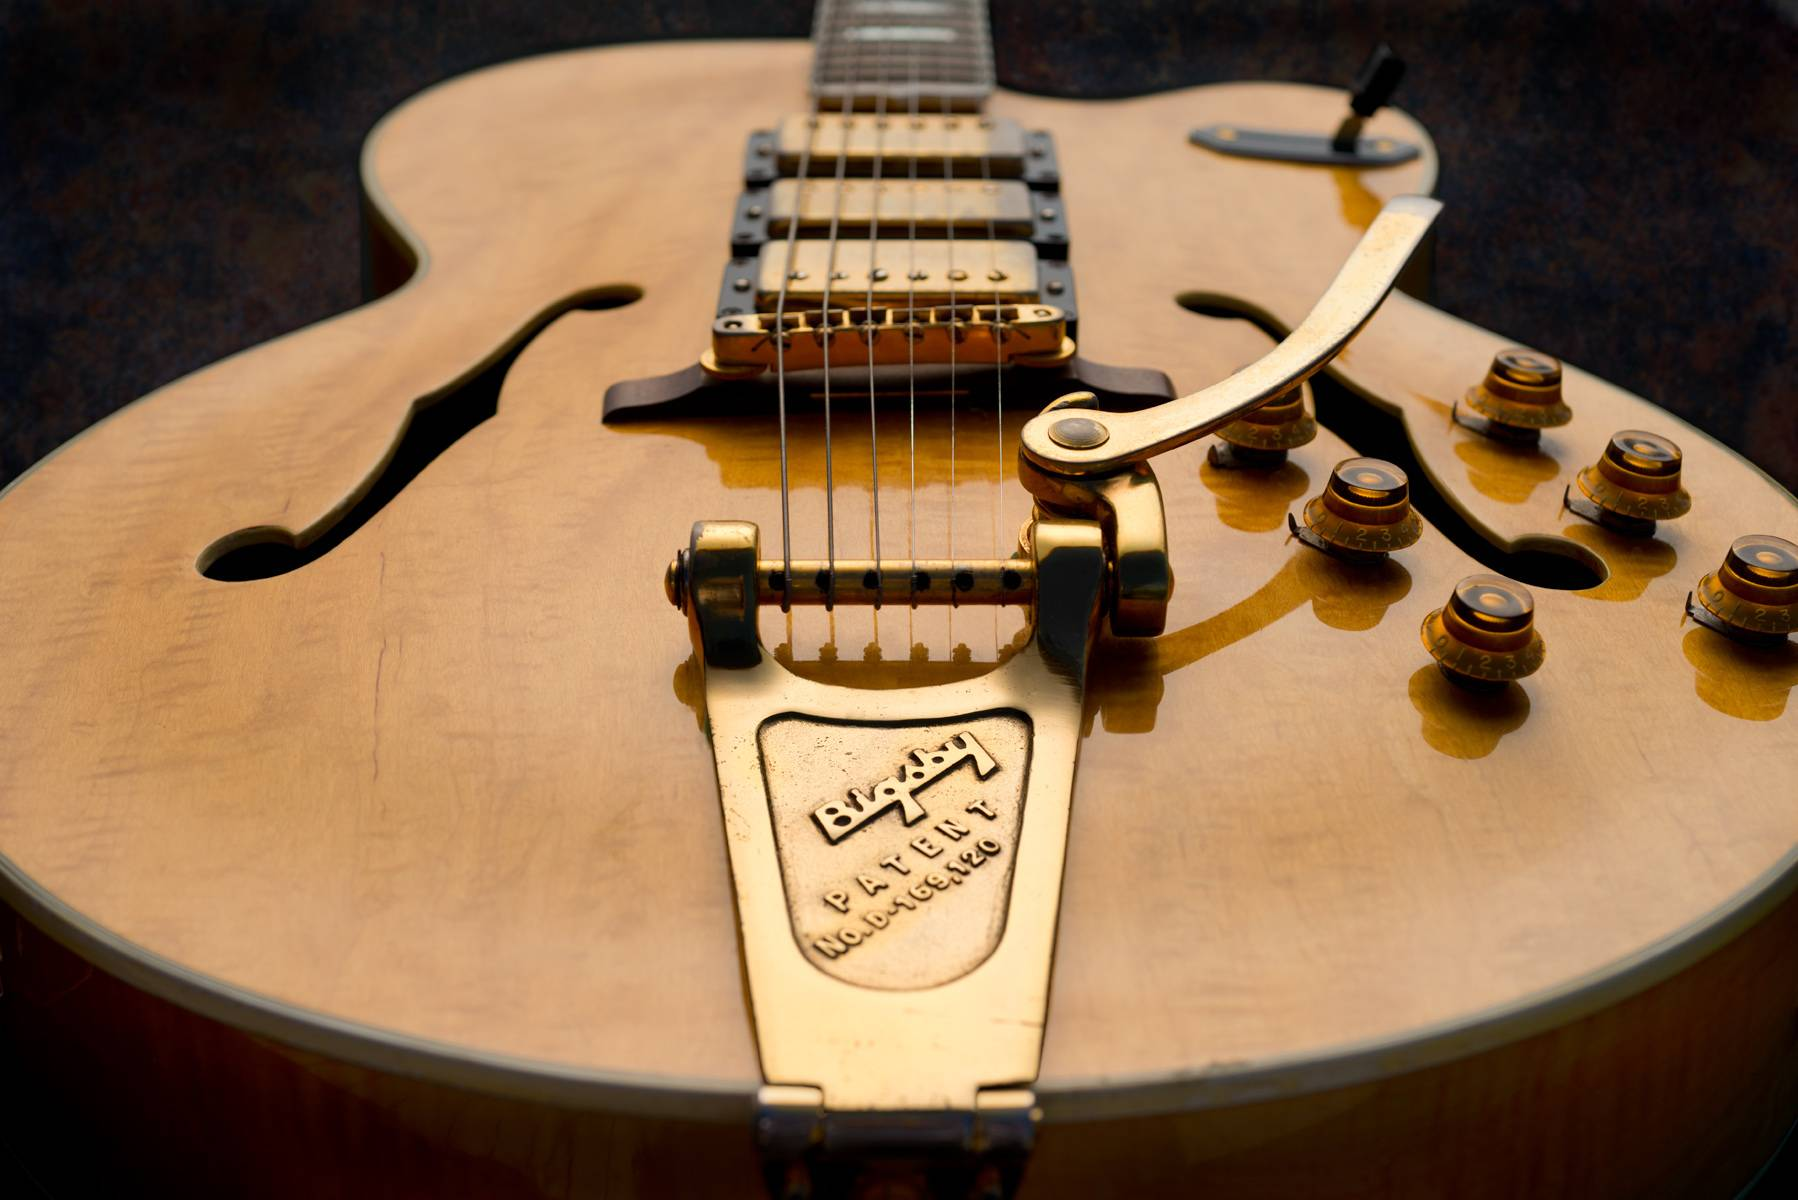 134_1gibson_es_5_switchmaster_c_1955_website.jpg